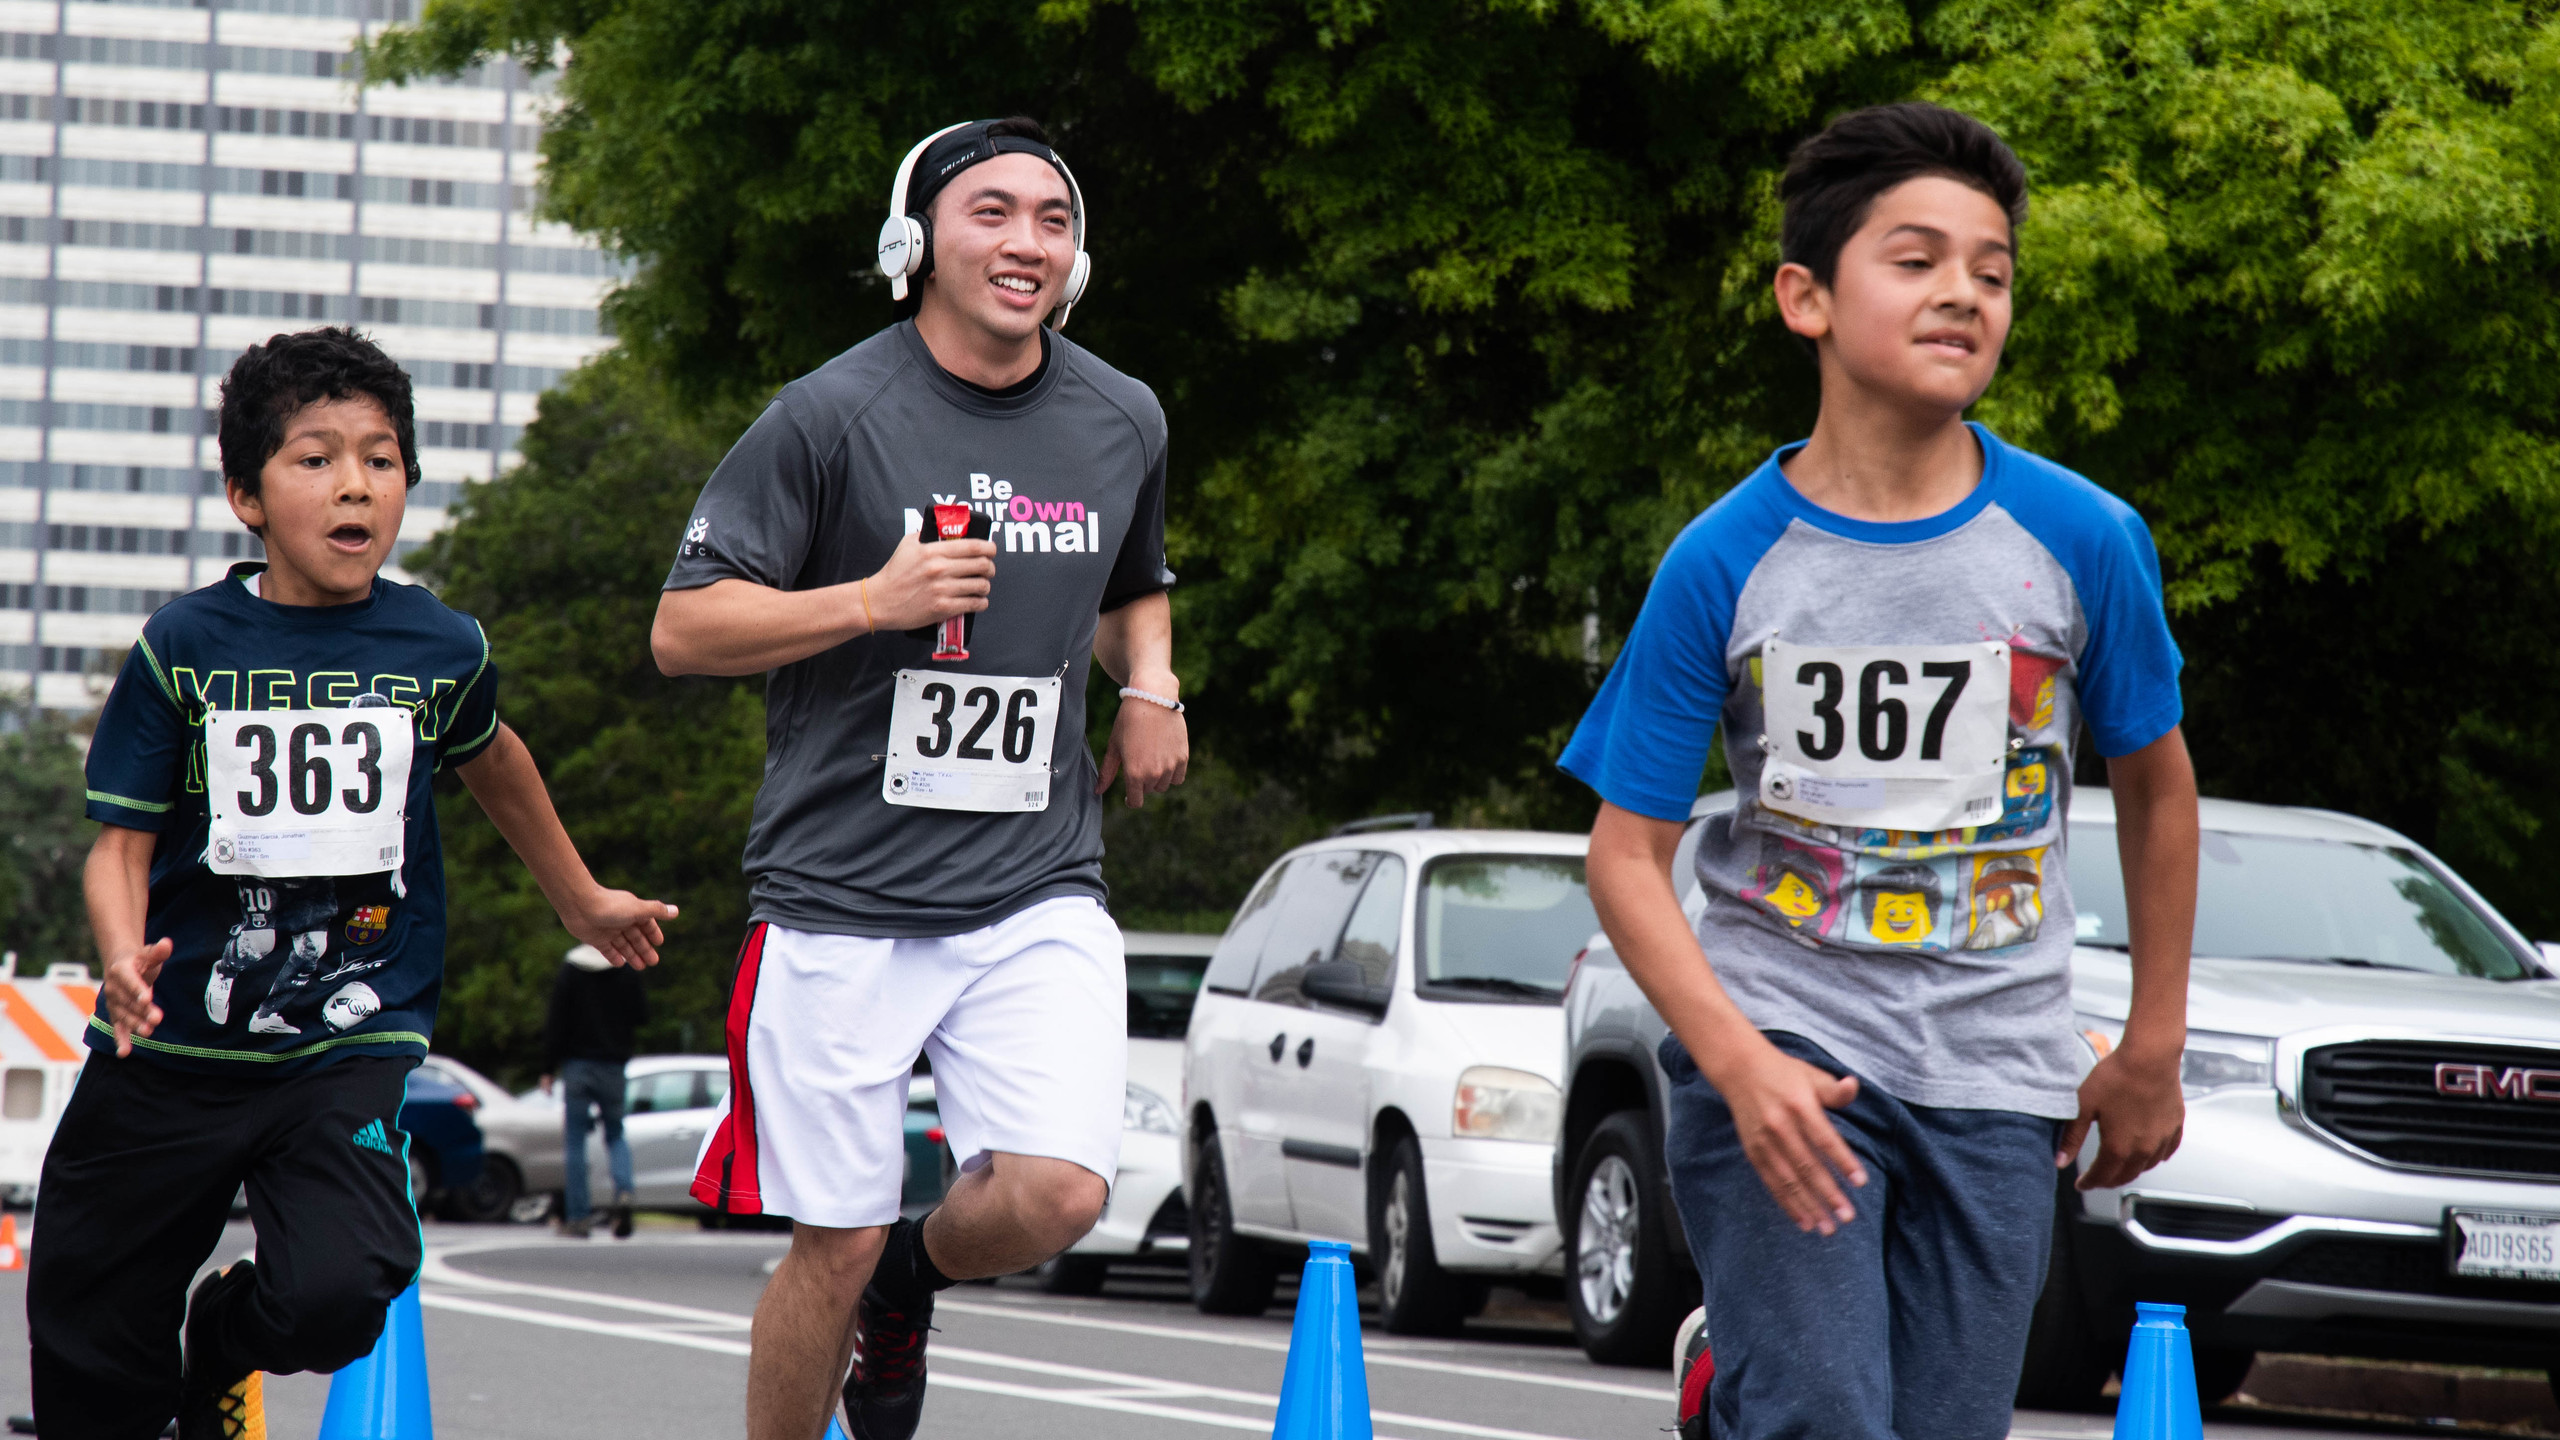 Three young people running